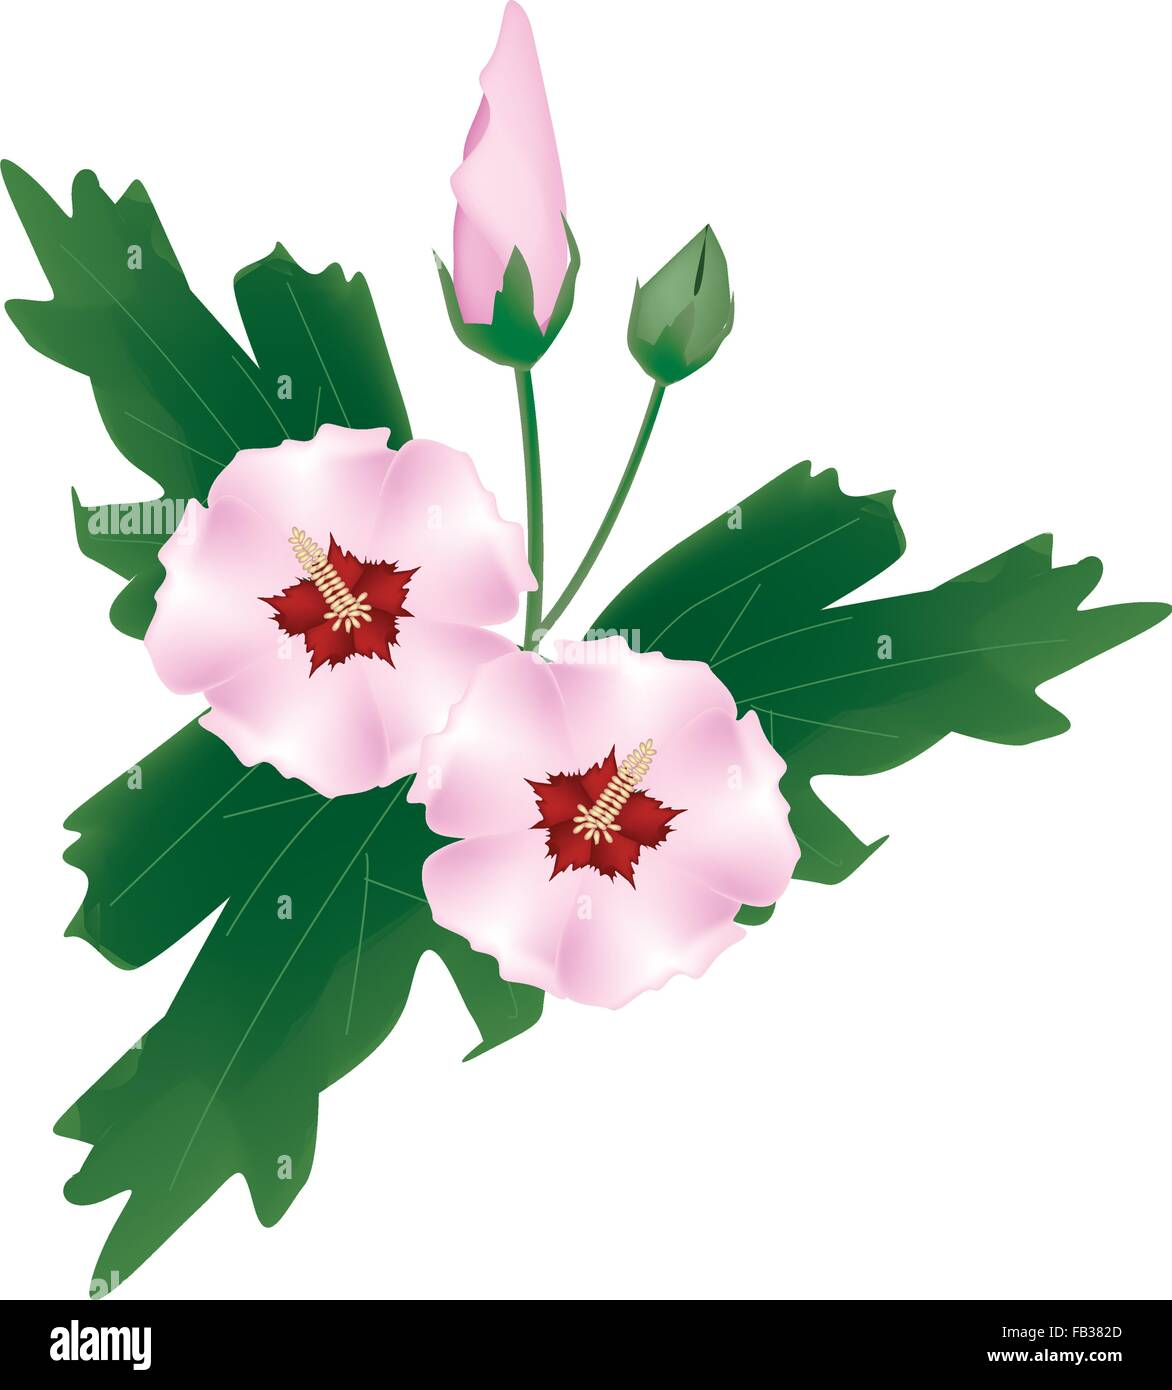 beautiful flower illustration fresh pink hibiscus rose mallow or stock vector image art alamy alamy